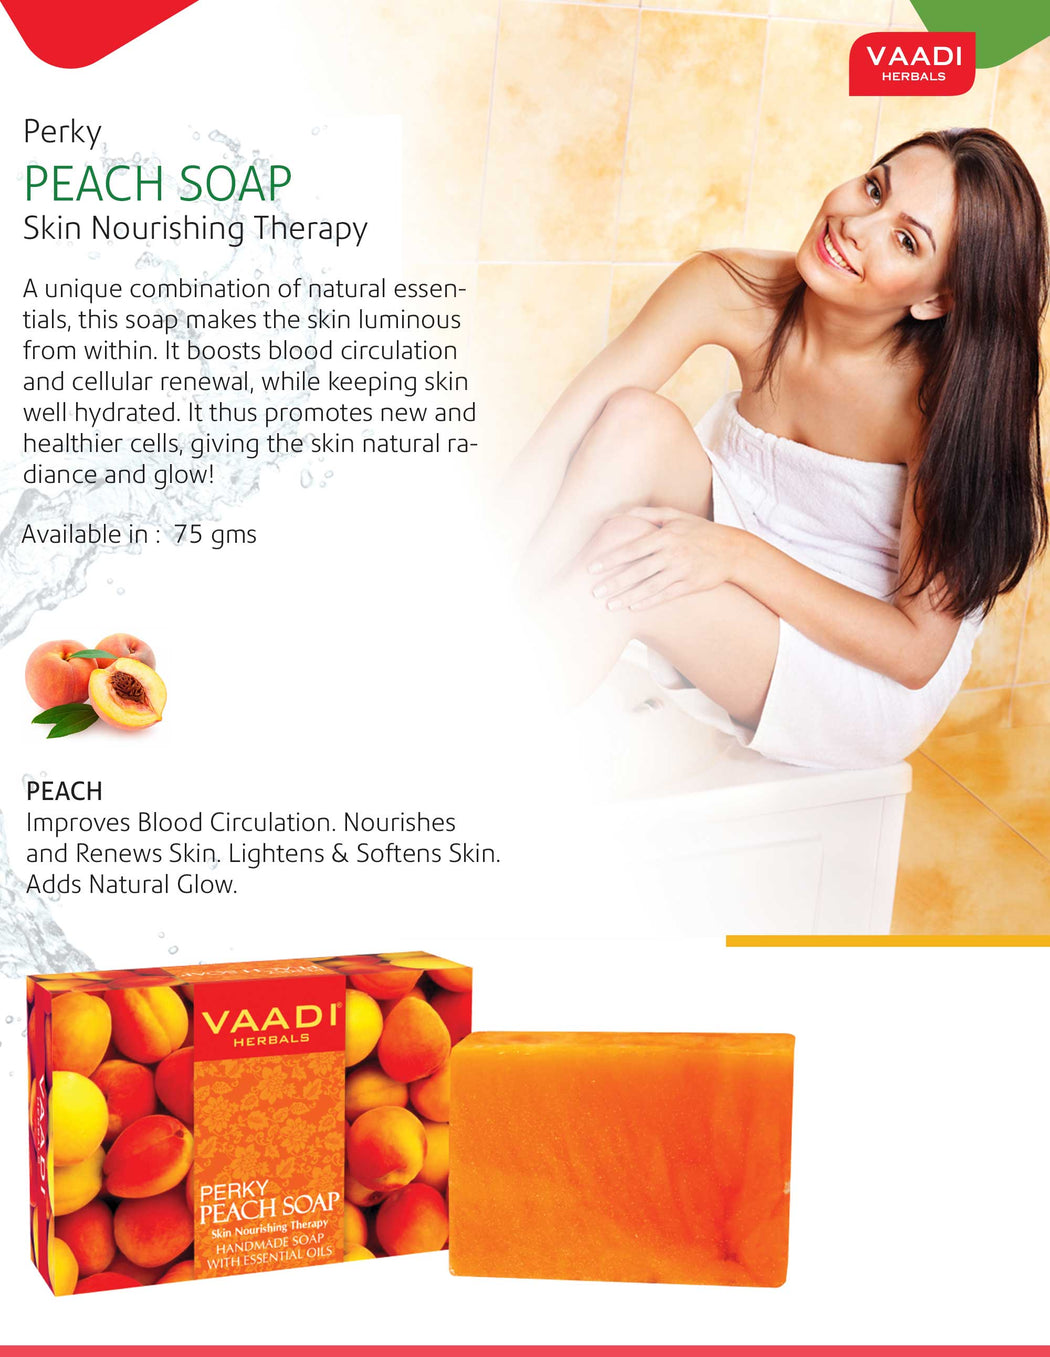 Perky Peach Soap With Almond Oil (75 gms)